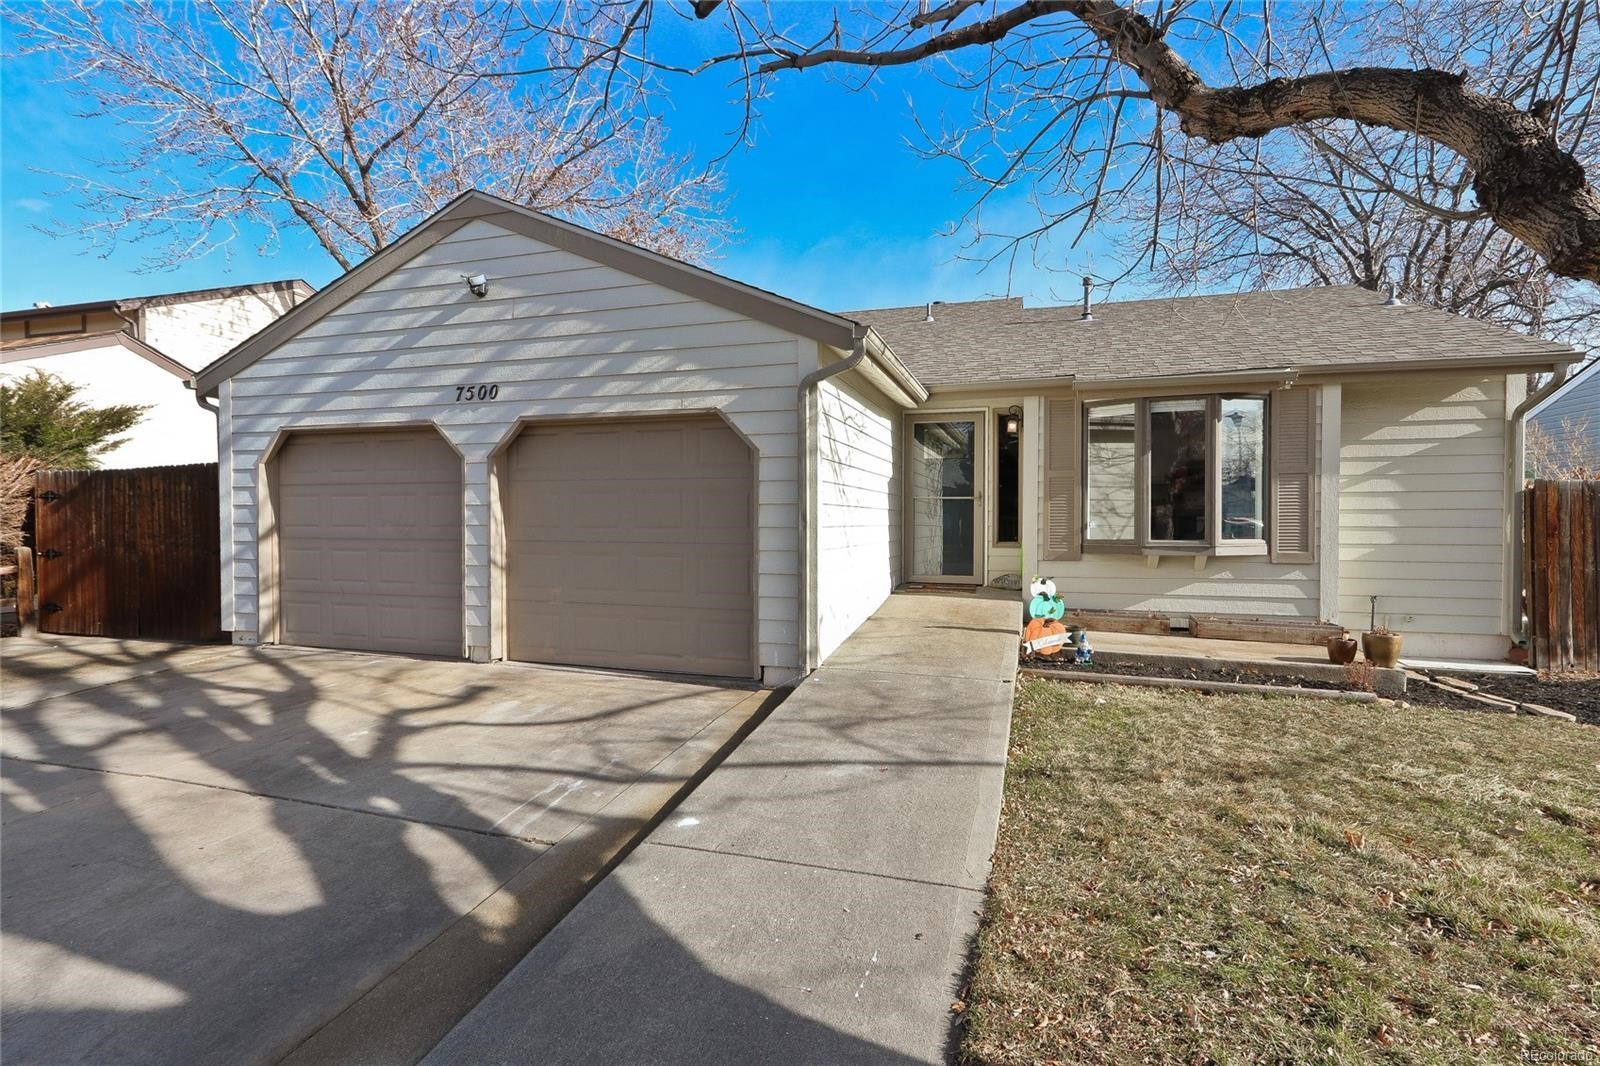 MLS# 9811960 - 3 - 7500 Chase Street, Arvada, CO 80003